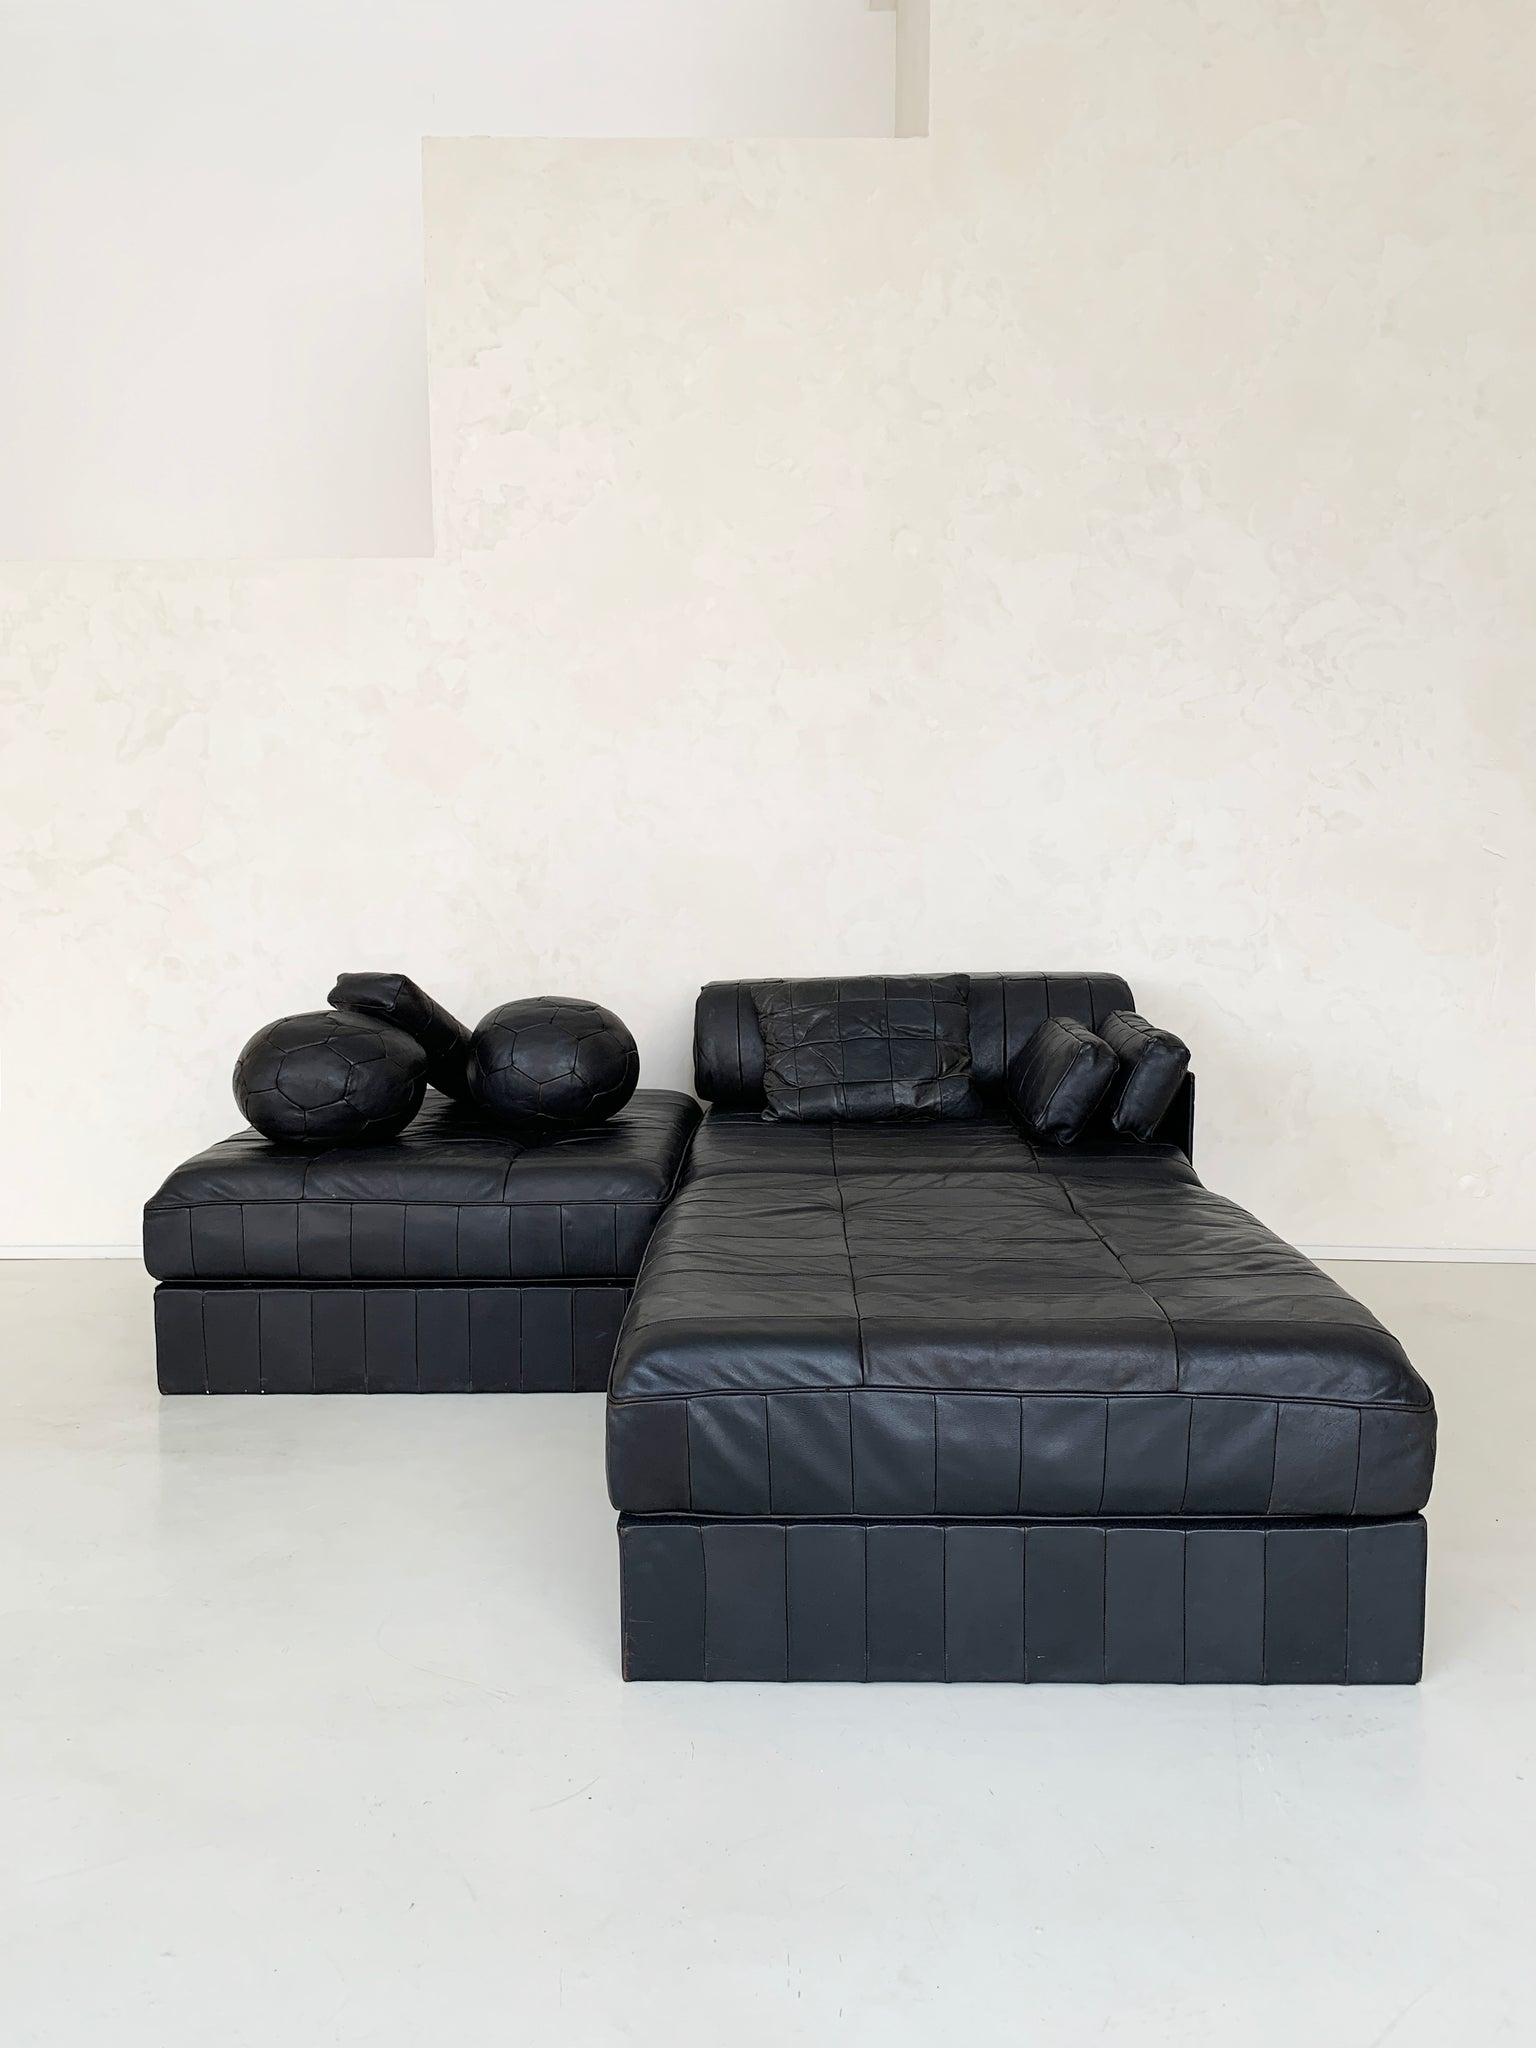 1970s Black Leather Patchwork DS 88 Modular Sofa-Bed by De Sade, Switzerland